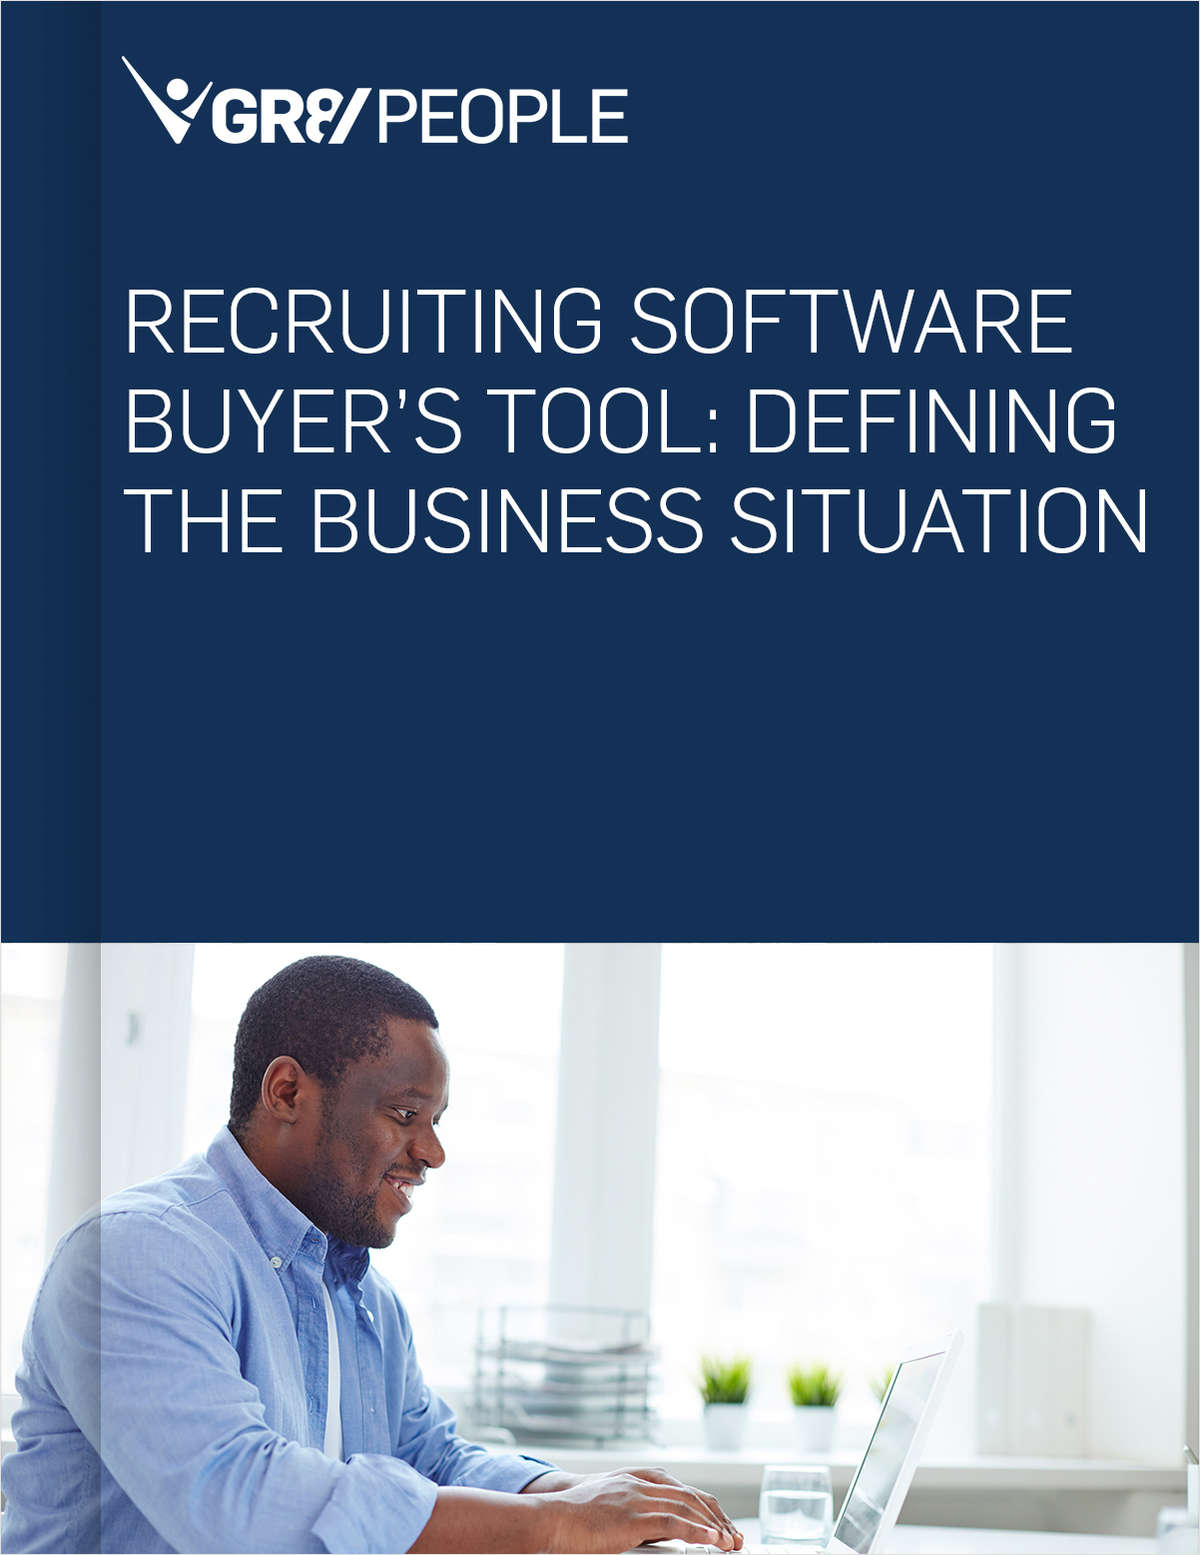 Recruiting Software Buyer's Tool: How to Define the Business Situation